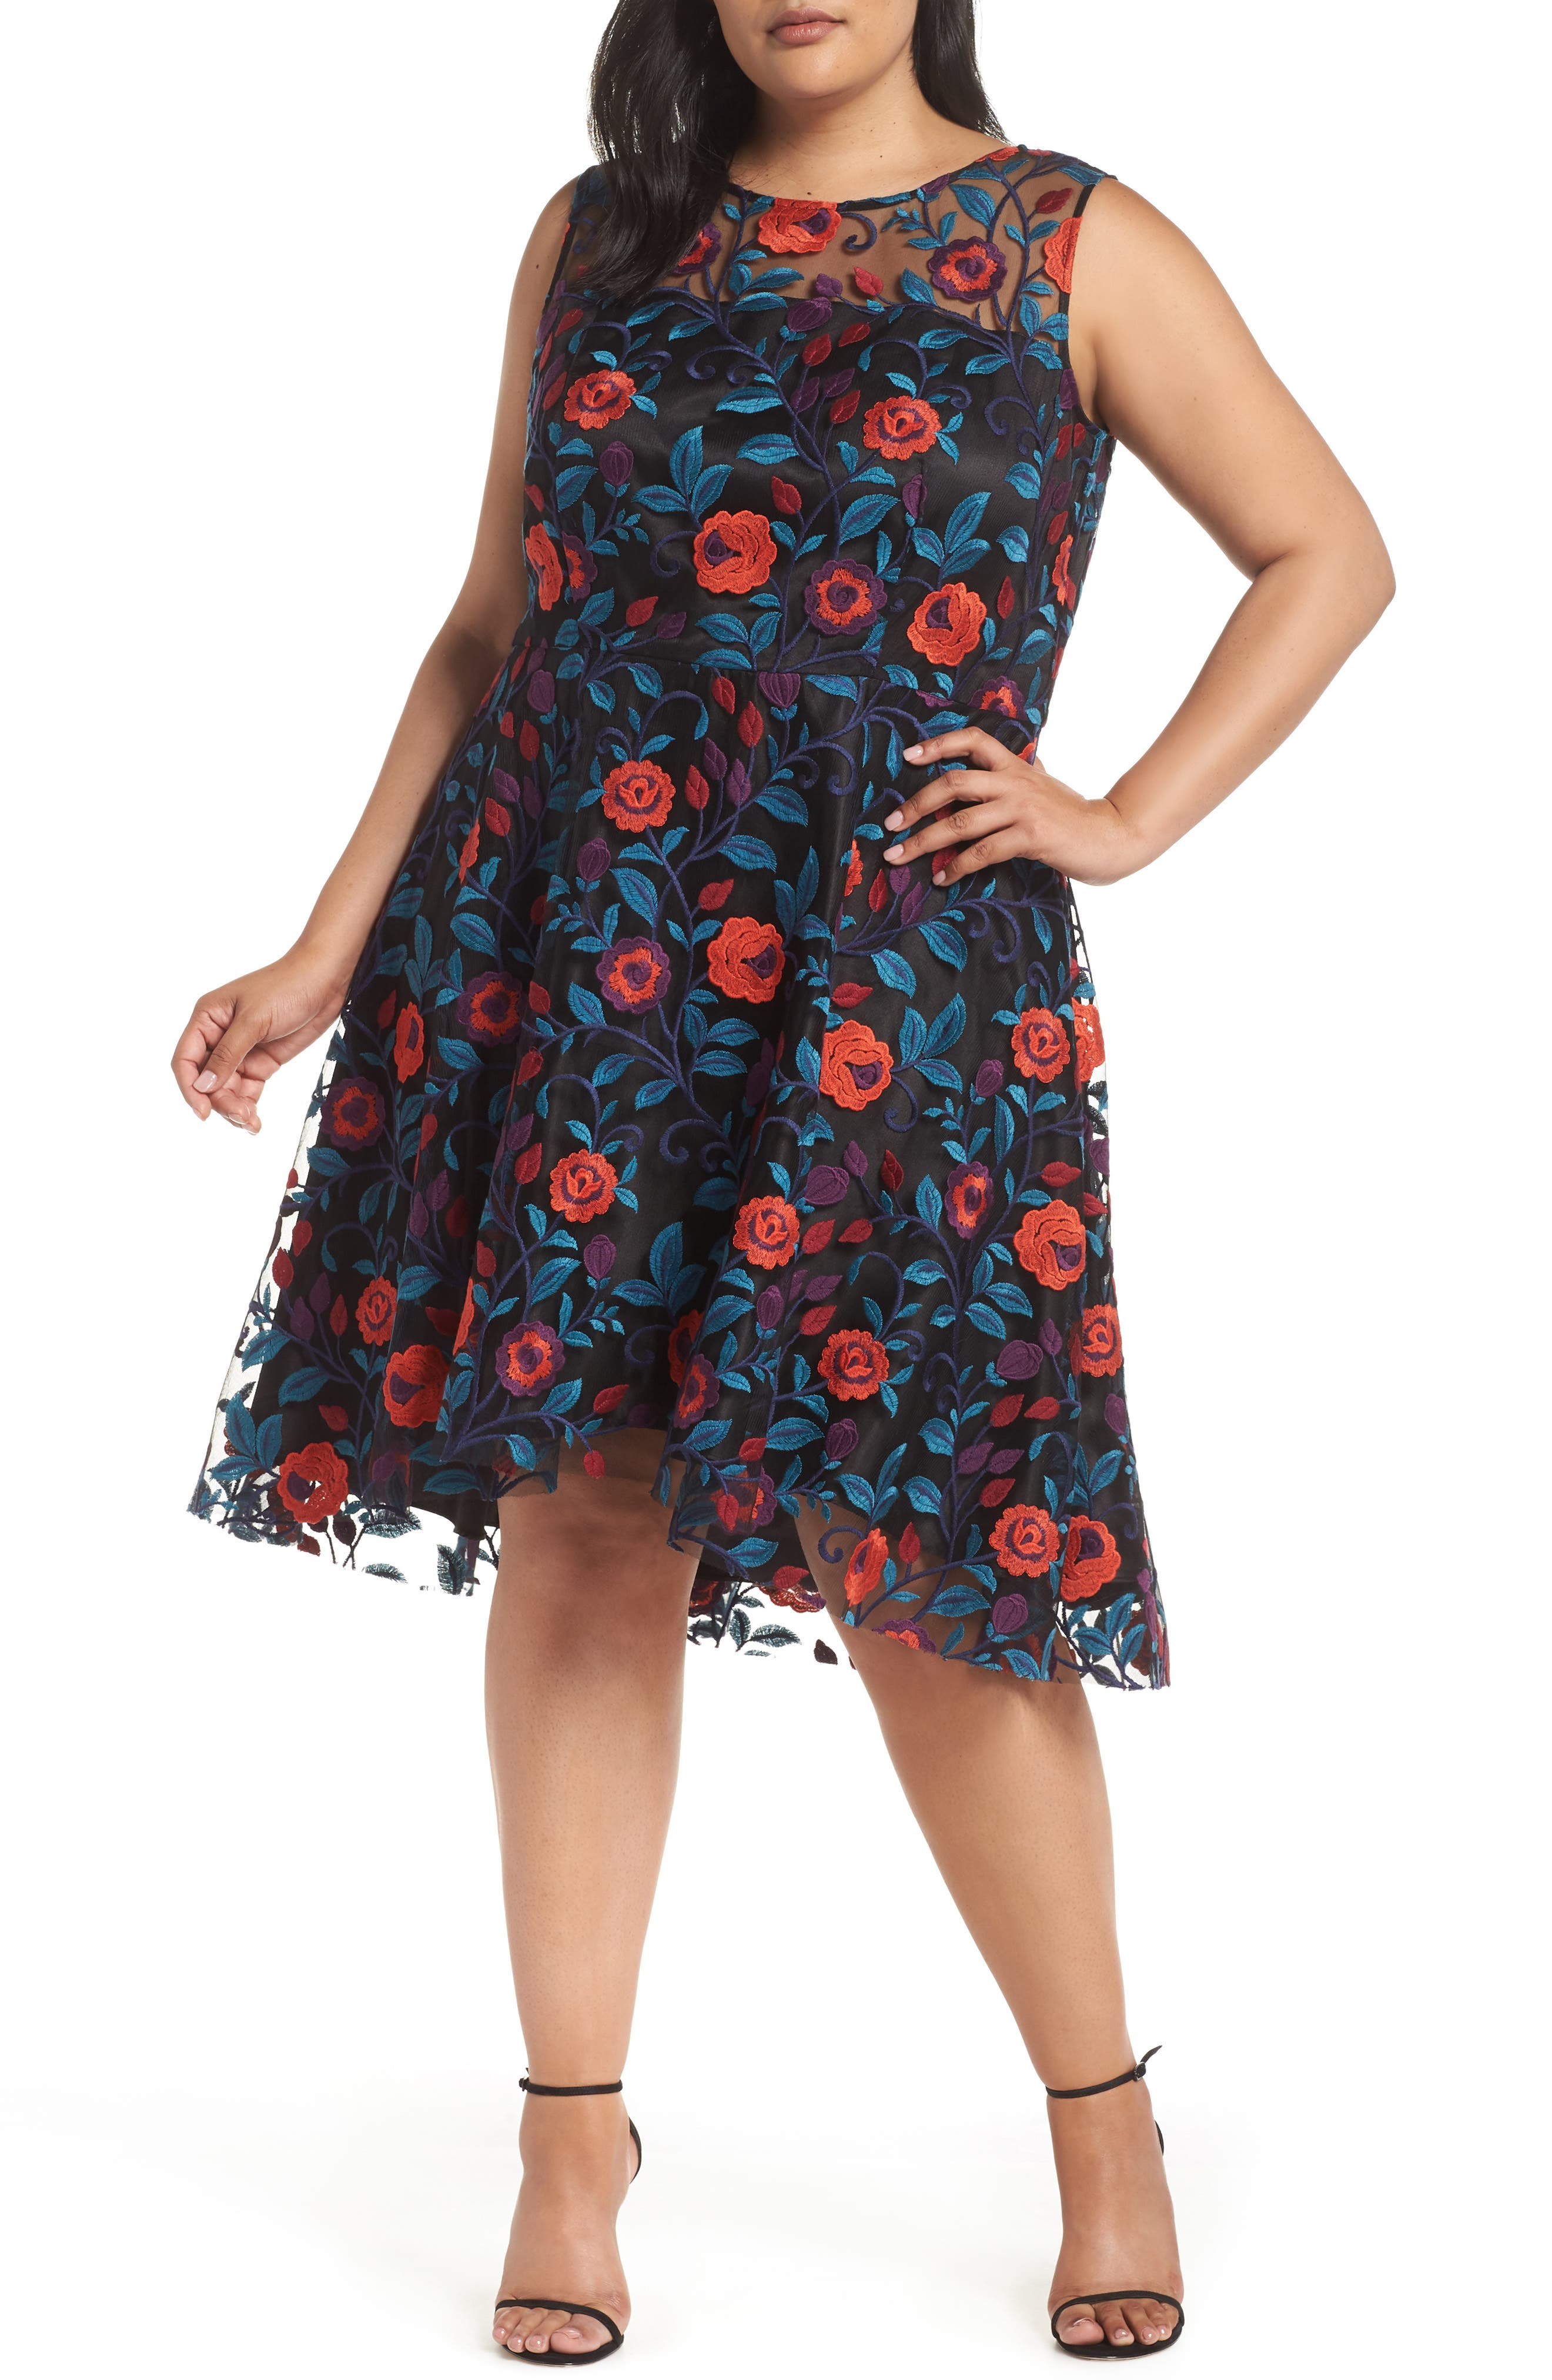 TAHARI Floral Embroidery Fit And Flare Dress in Black/ Teal/ Red